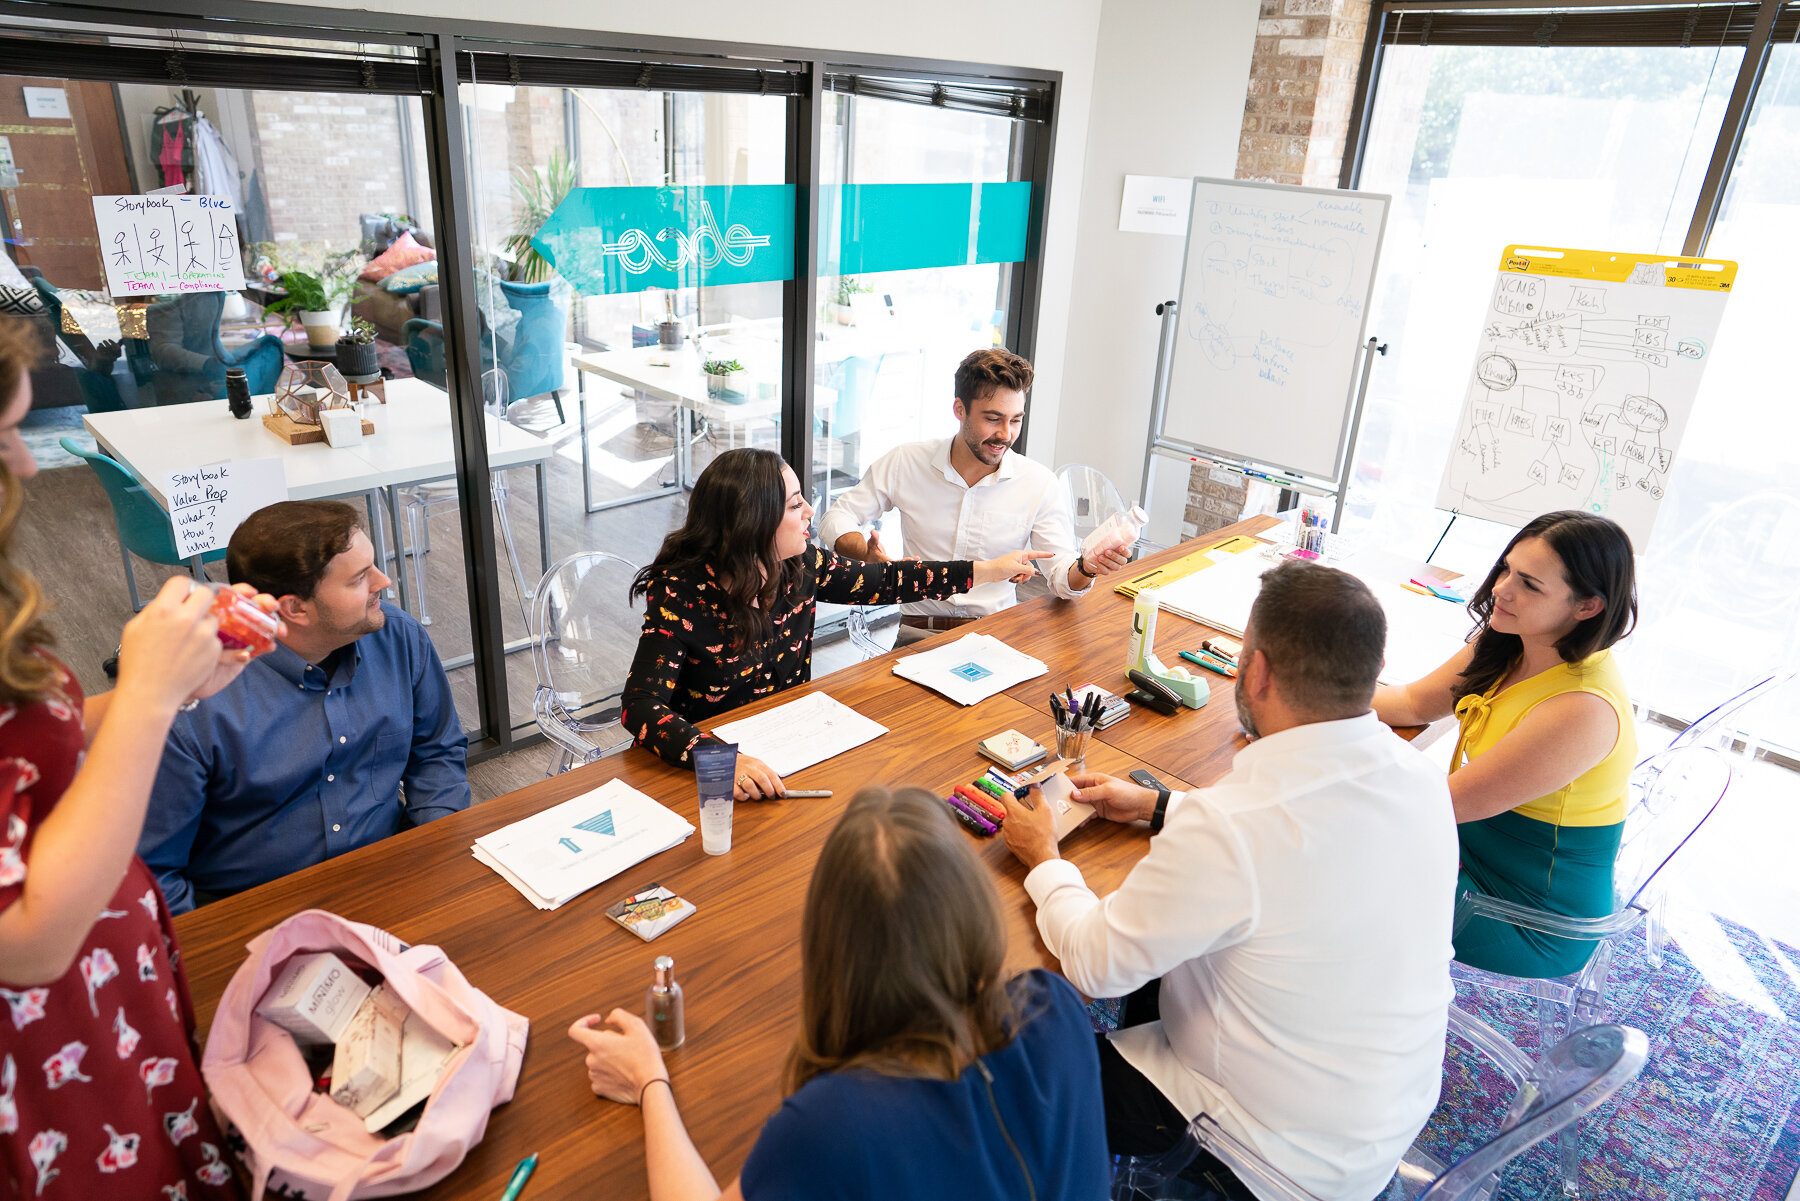 Top 5 Learnings from our Summer Innovation Roundtable - we asked 50 leading innovators to give their personal take on trend forecasting